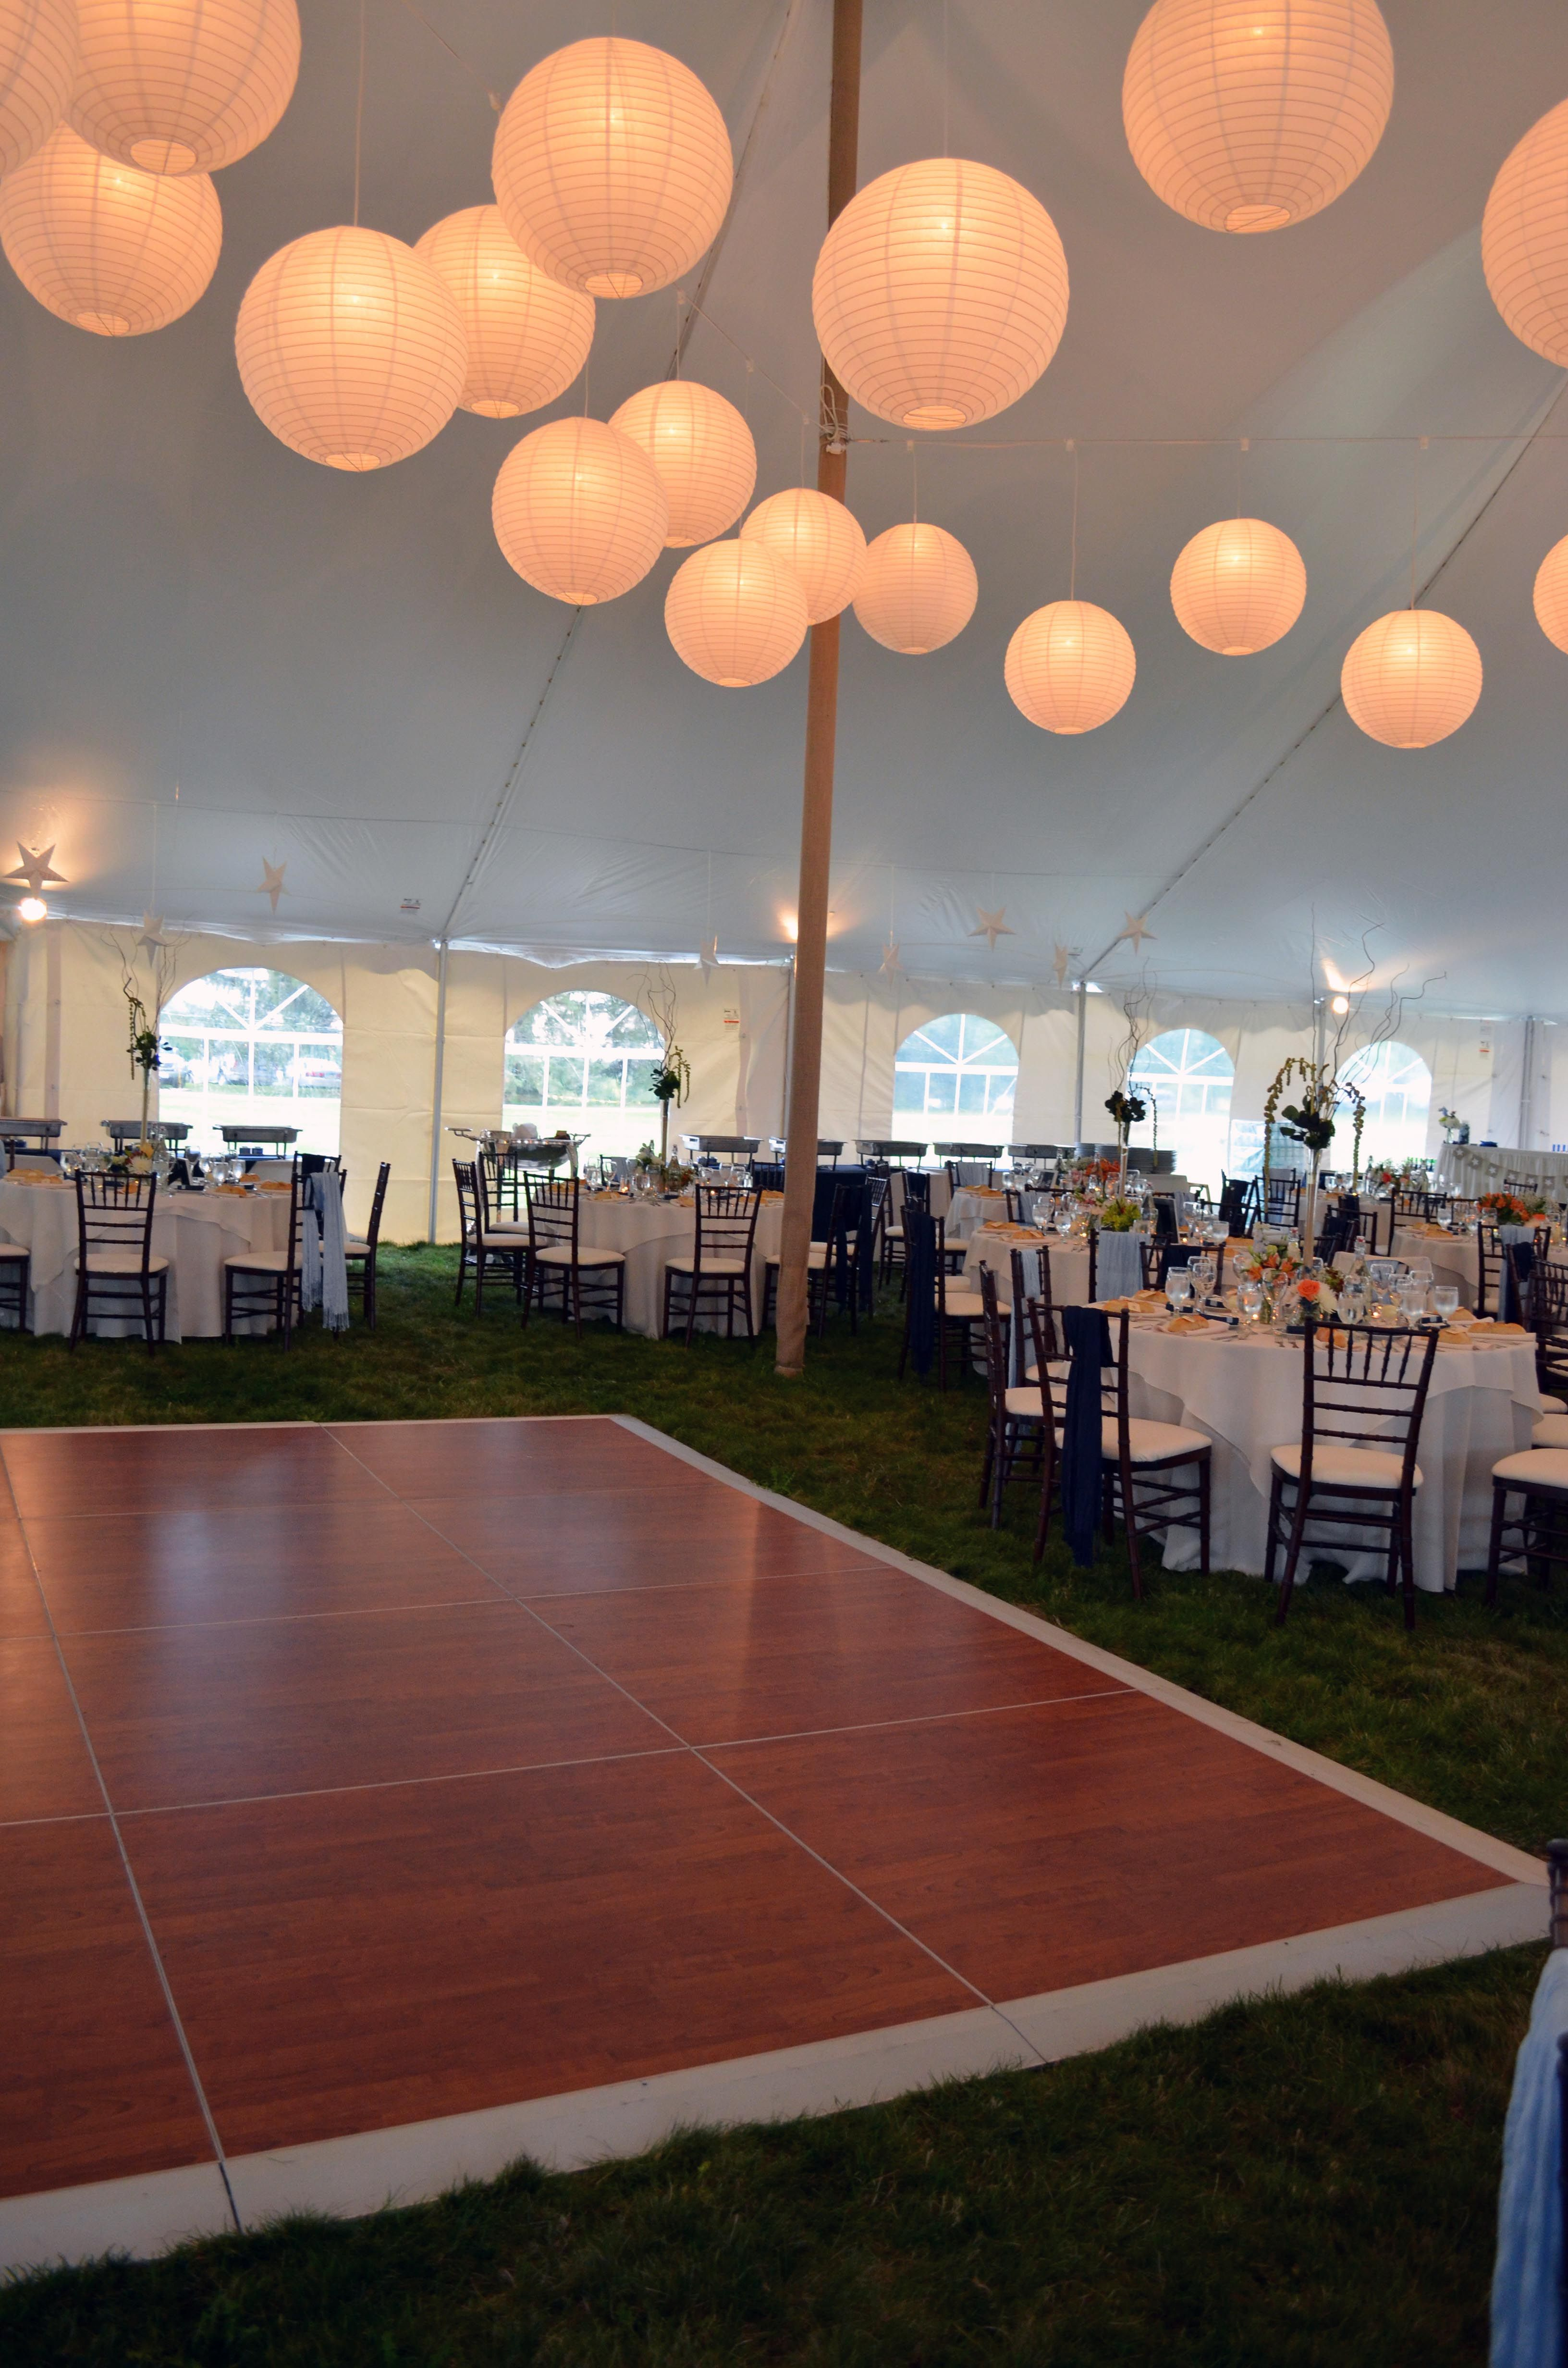 These Lanterns Add A Beautiful Glow To An Outdoor Tent Wedding Cantonchairal